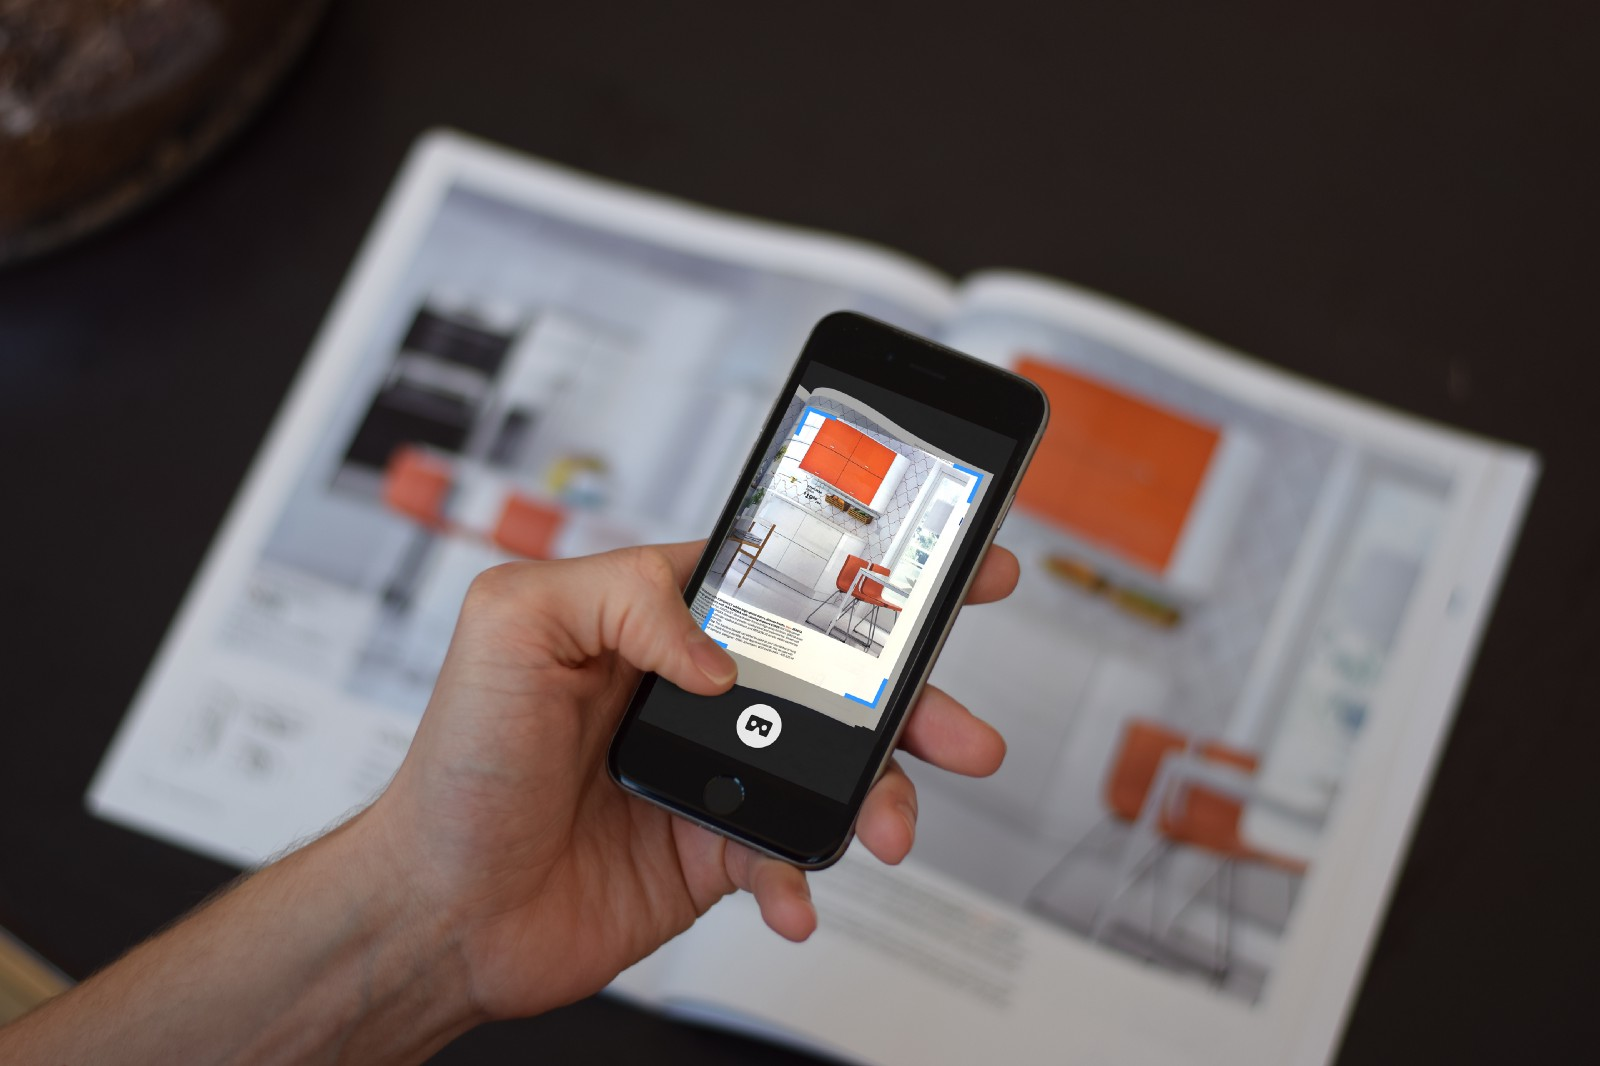 With augmented reality and print the possibilities are nearly endless.